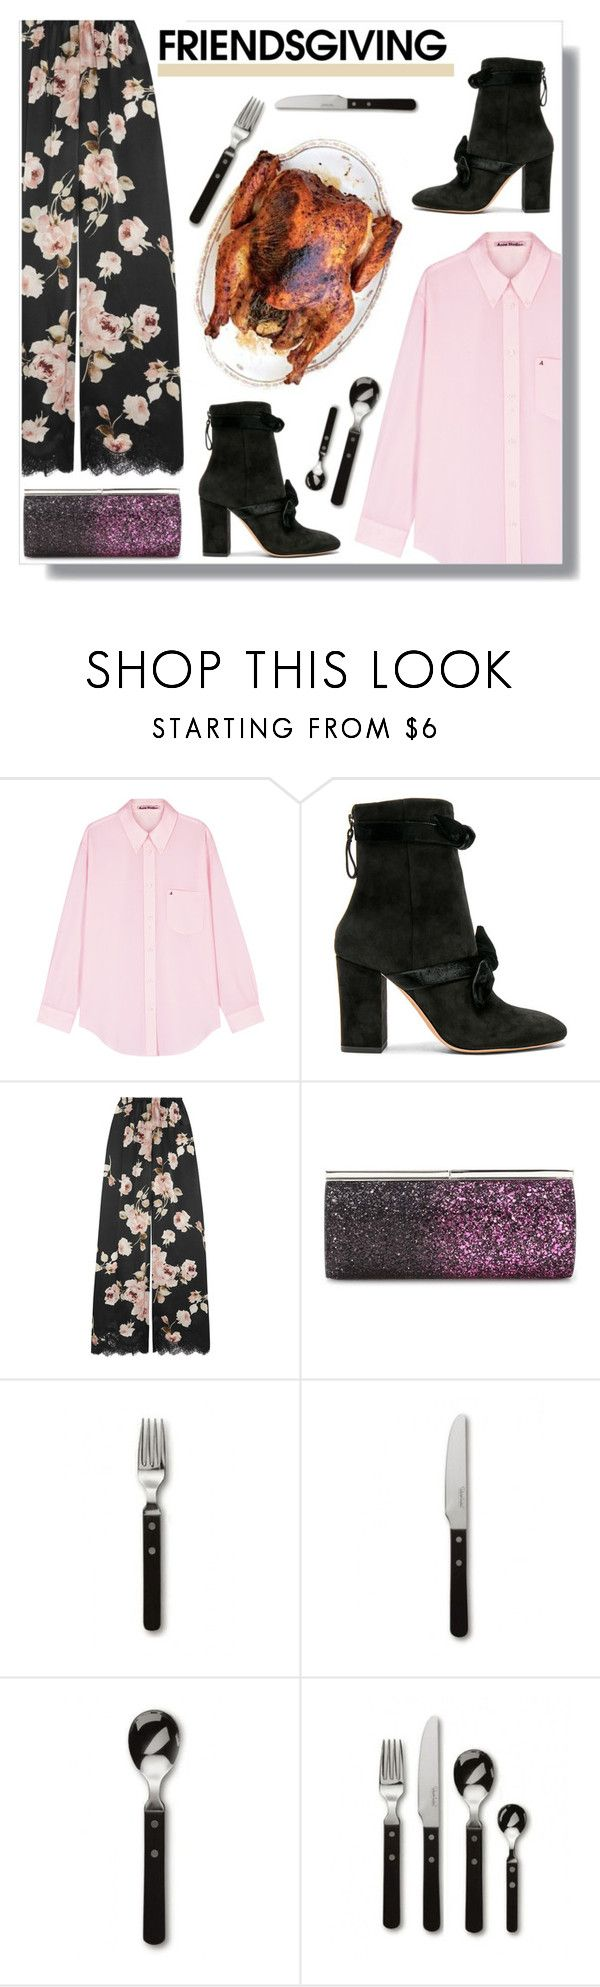 """""""Friendsgiving!"""" by peony-and-python ❤ liked on Polyvore featuring Acne Studios, Alexandre Birman, Rosamosario, Jimmy Choo, Robert Welch, chic, thanksgiving, thankful and friendsgiving"""